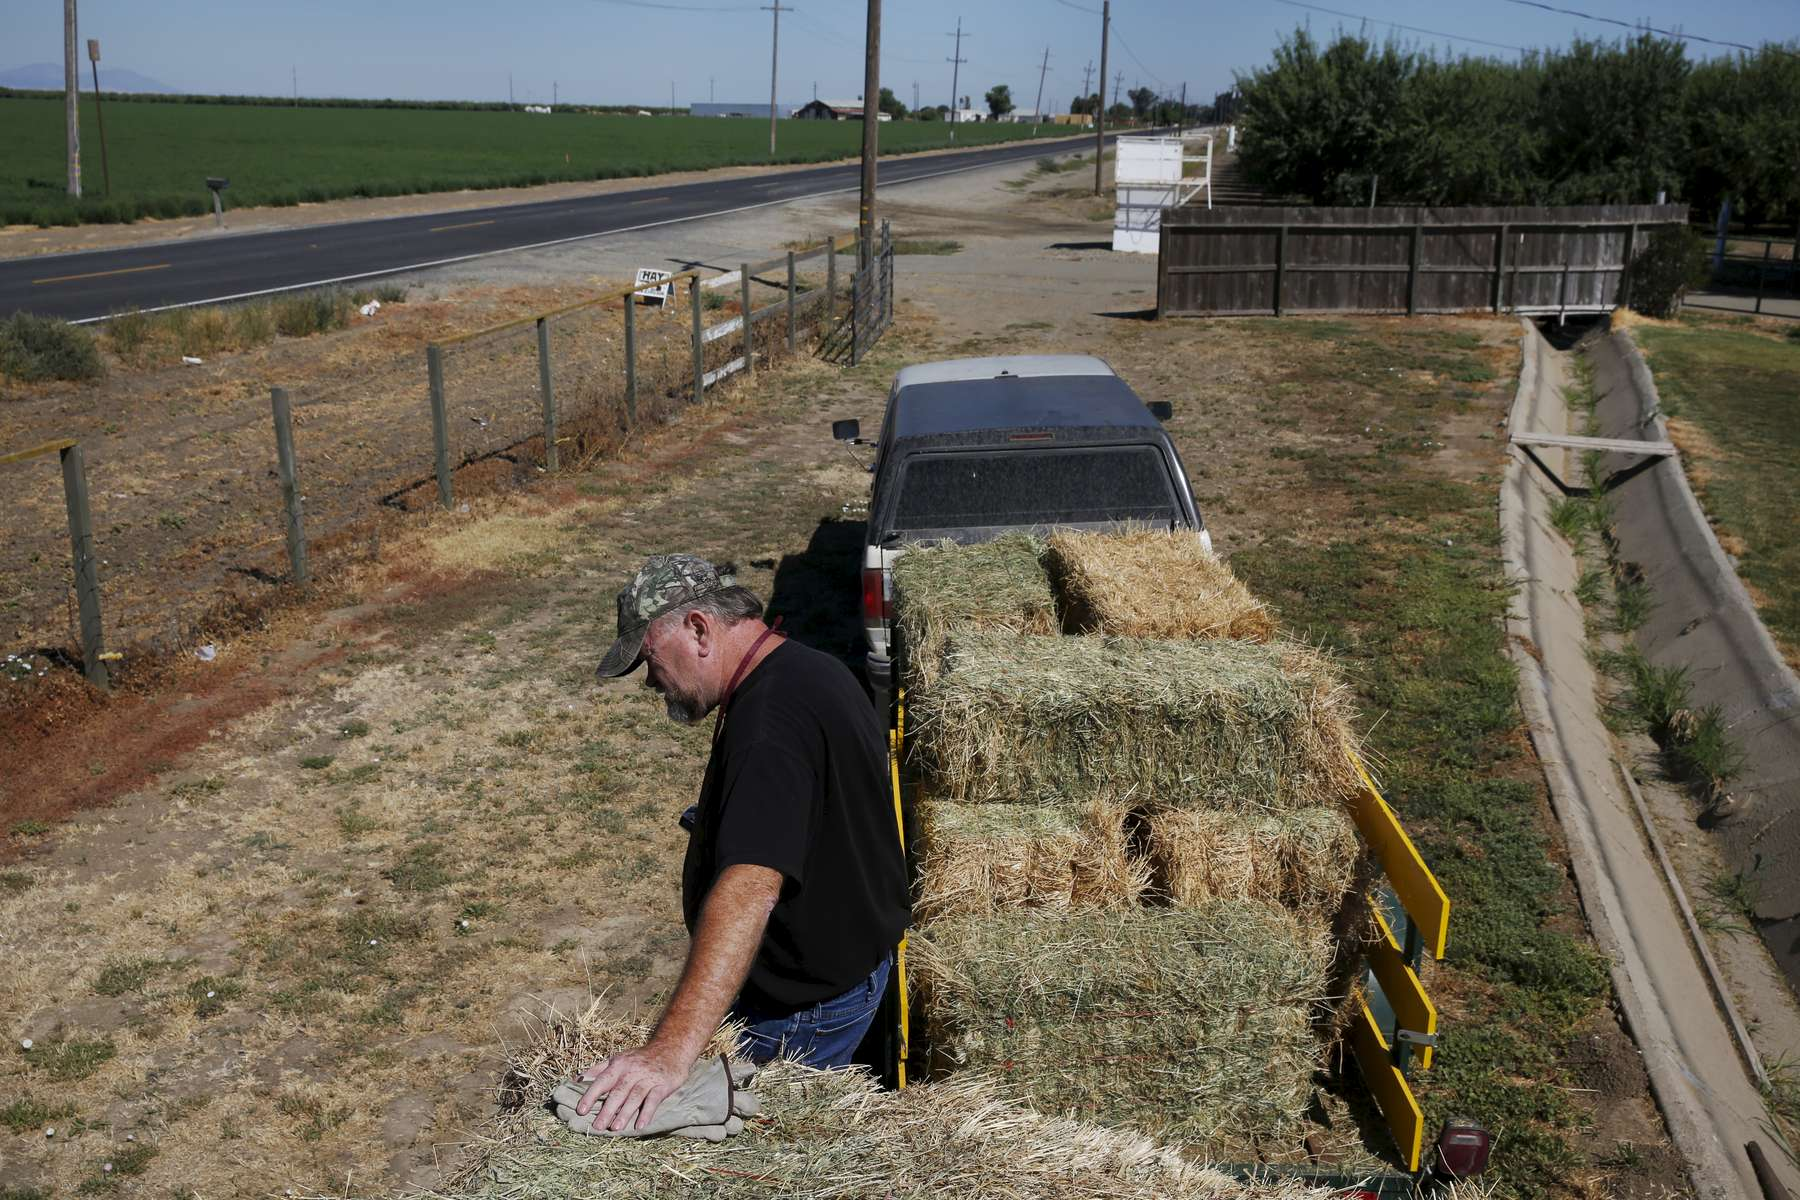 Baker pauses in the heat after loading an order of hay onto a customer's trailer at his home. Though he has senior water rights, Baker had his water turned off after the California State Resources Control Board ordered Banta-Carbona Irrigation District to stop pumping water.